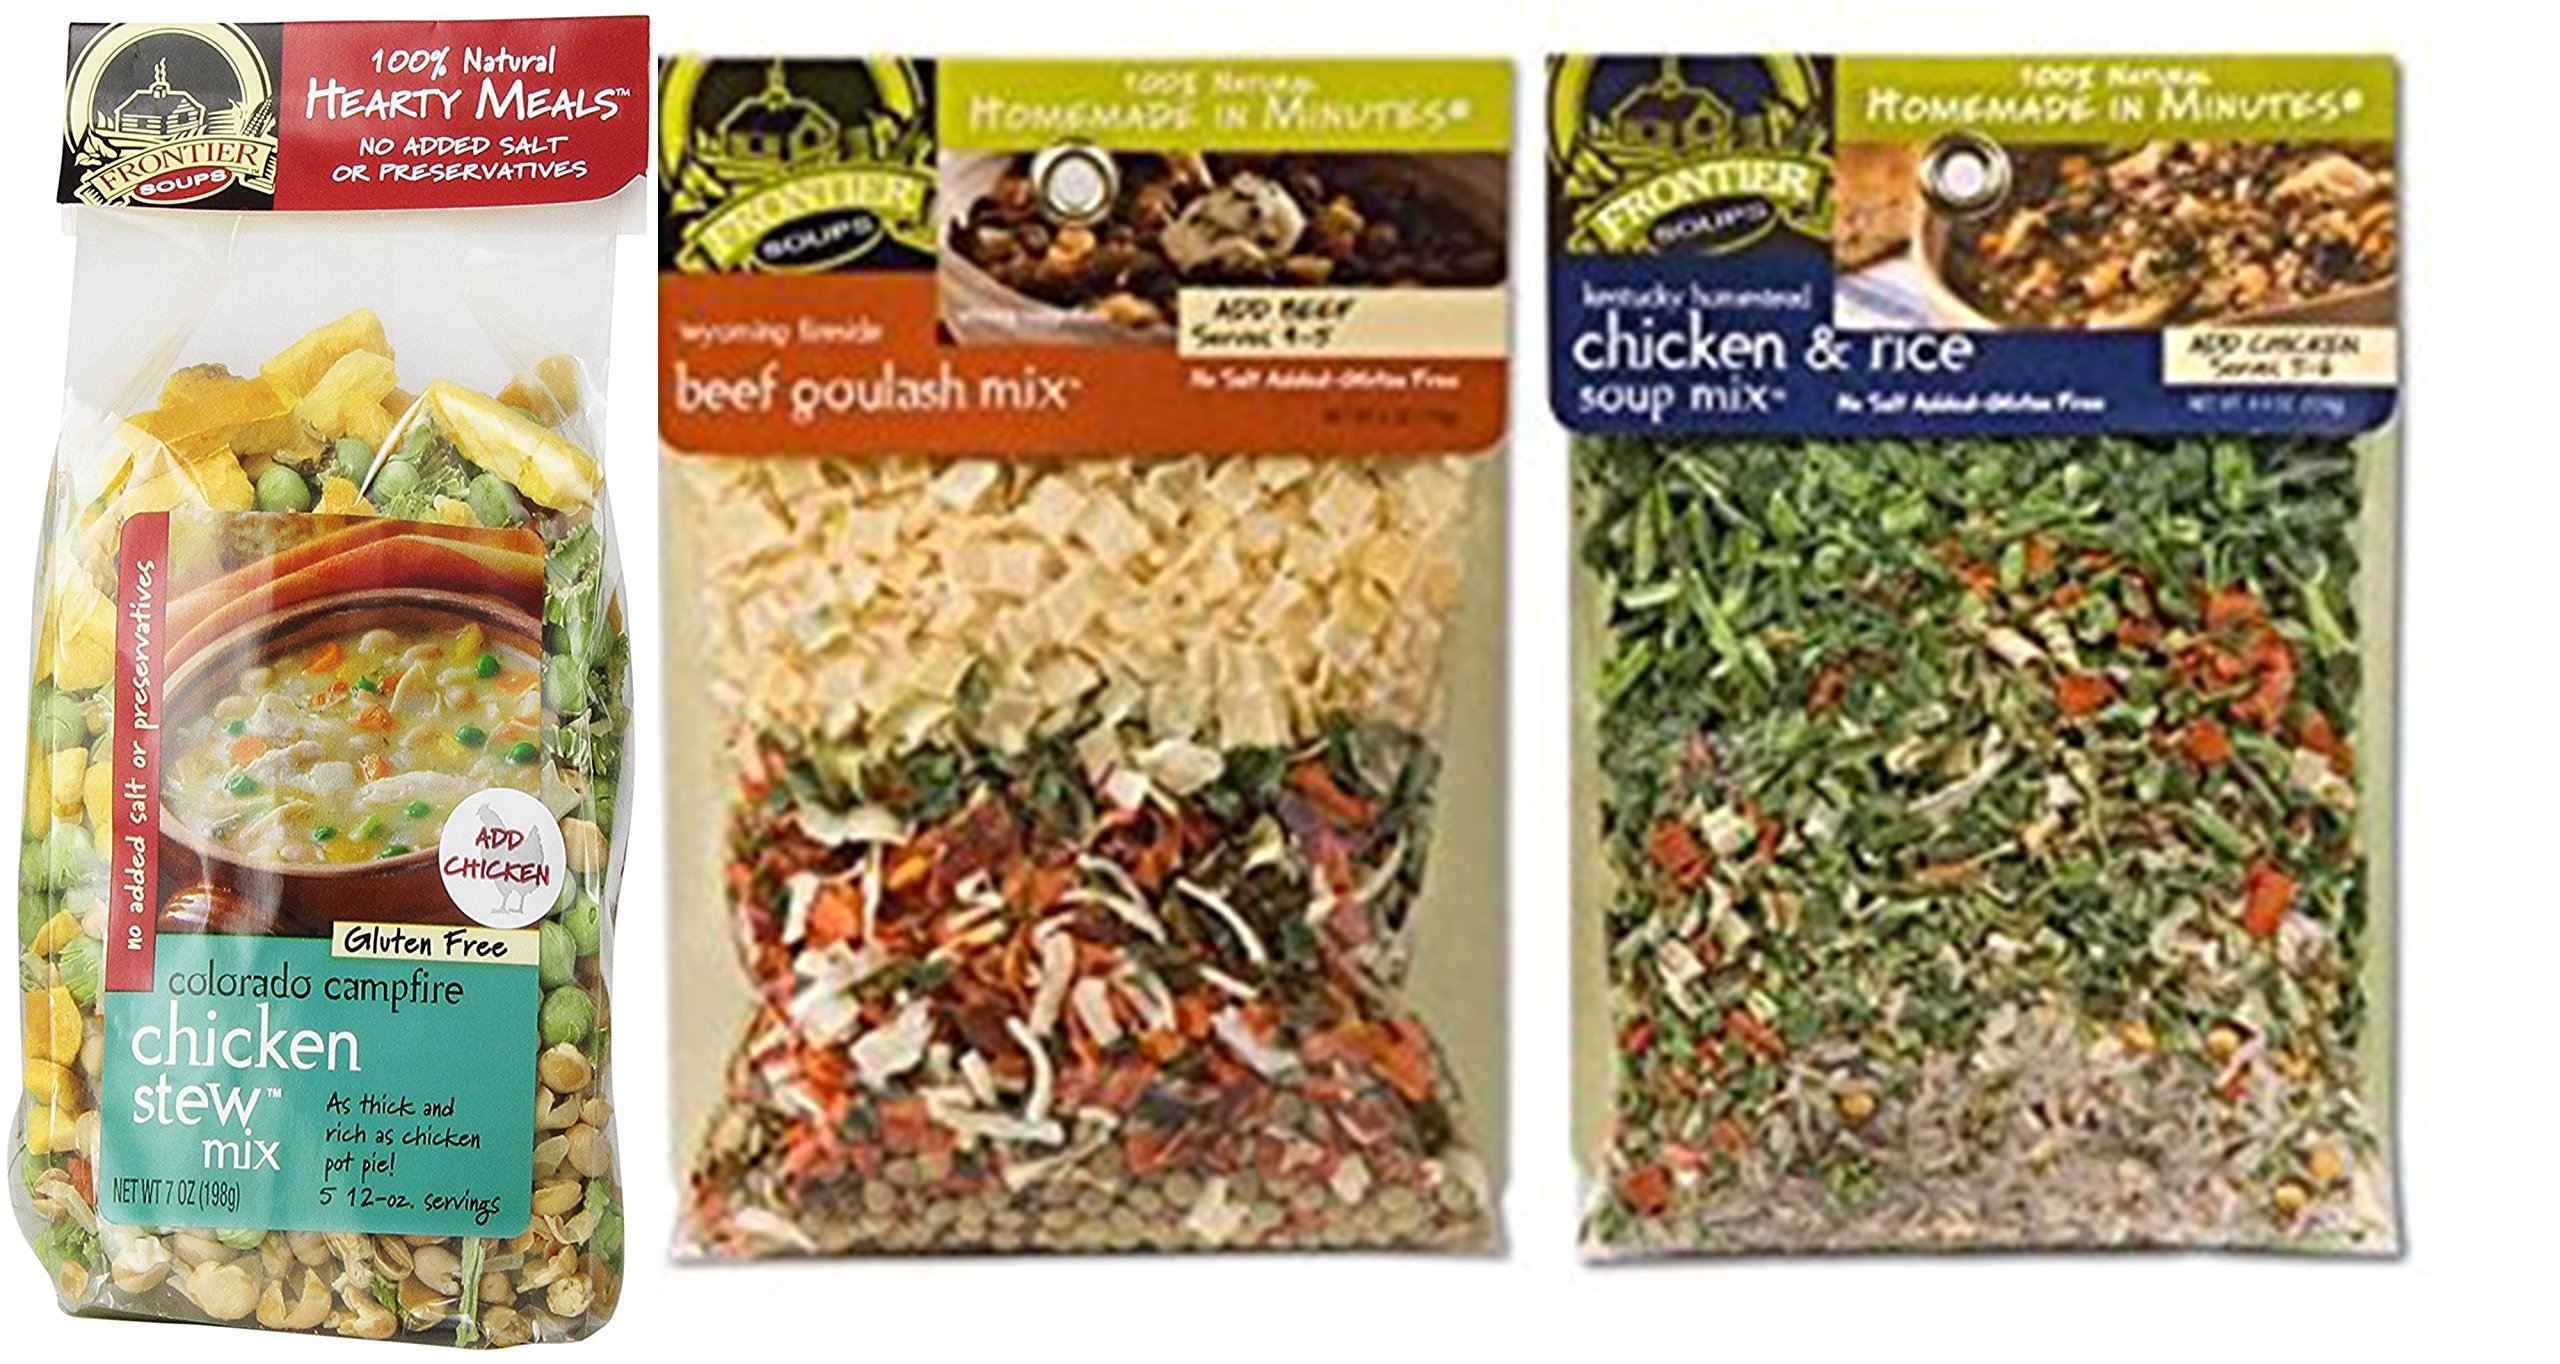 Frontier Soups Homemade In Minutes Bundle: Hearty Colorado Campfire Chicken Stew Mix 7 Oz, Wyoming Fireside Beef Goulash Mix 6 oz, Kentucky Homestead Chicken and Rice Soup Mix 4.25 oz